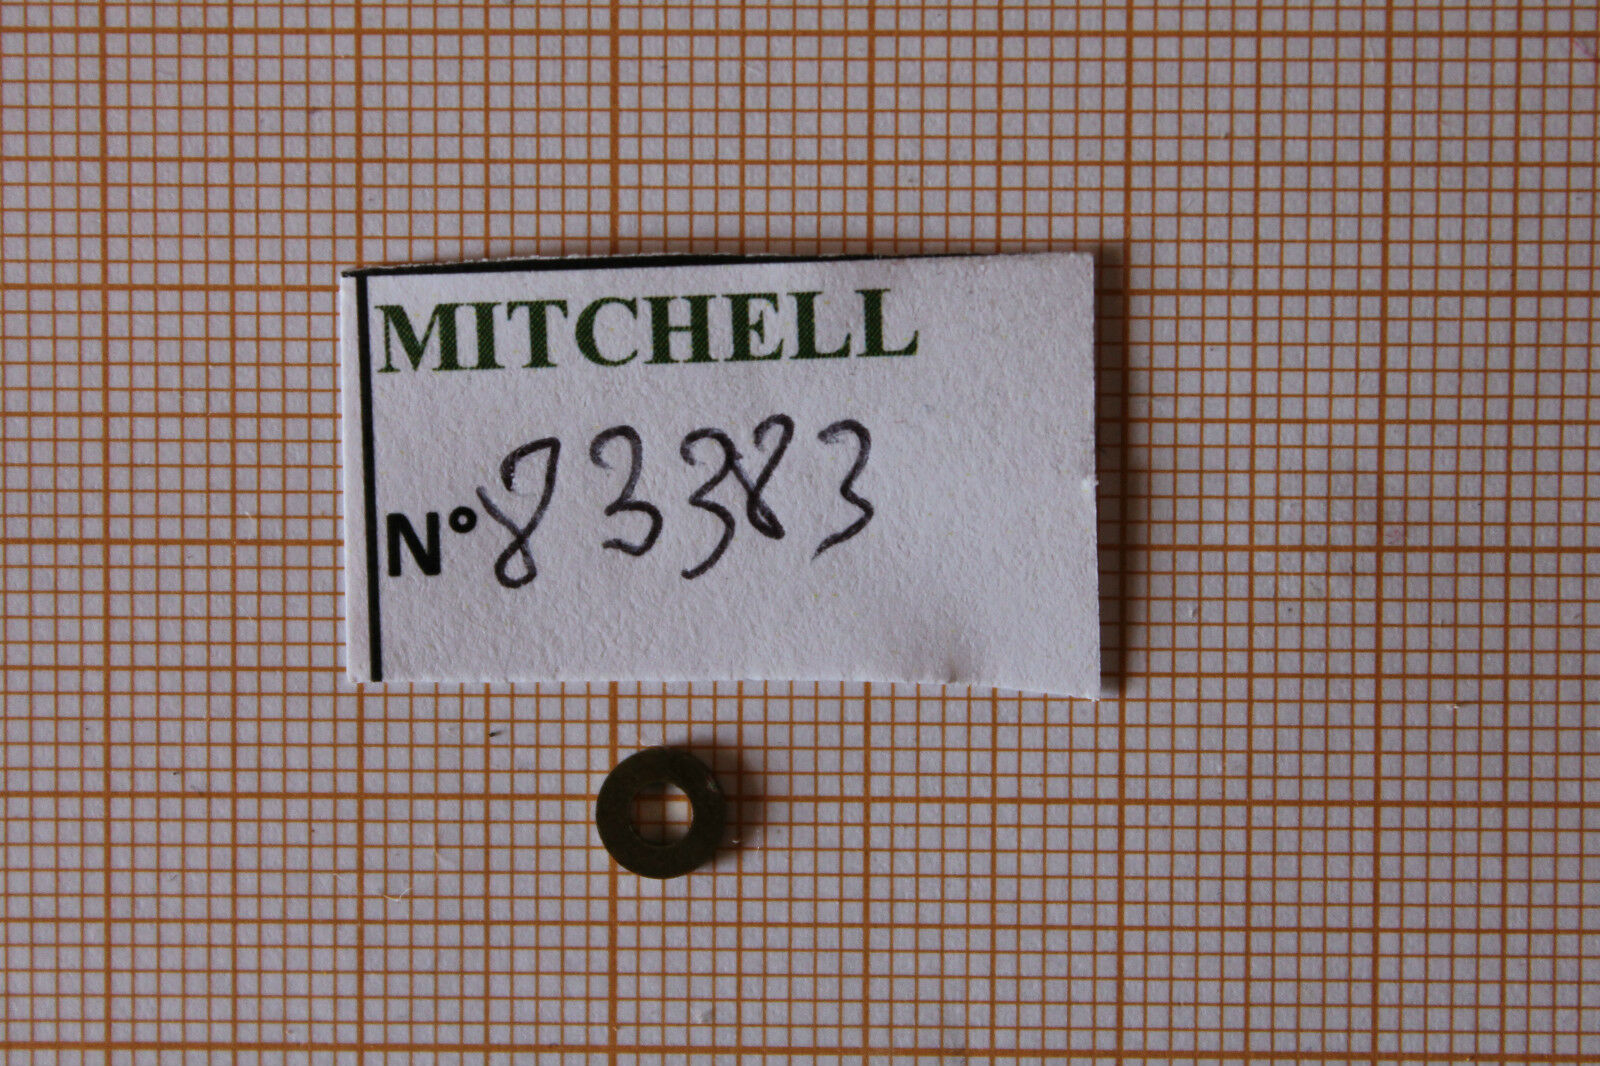 100 RONDELLES 300A 5540RD & autres MOULINETS MITCHELL CONTINUED CONTINUED MITCHELL REEL PART 83383 17d886